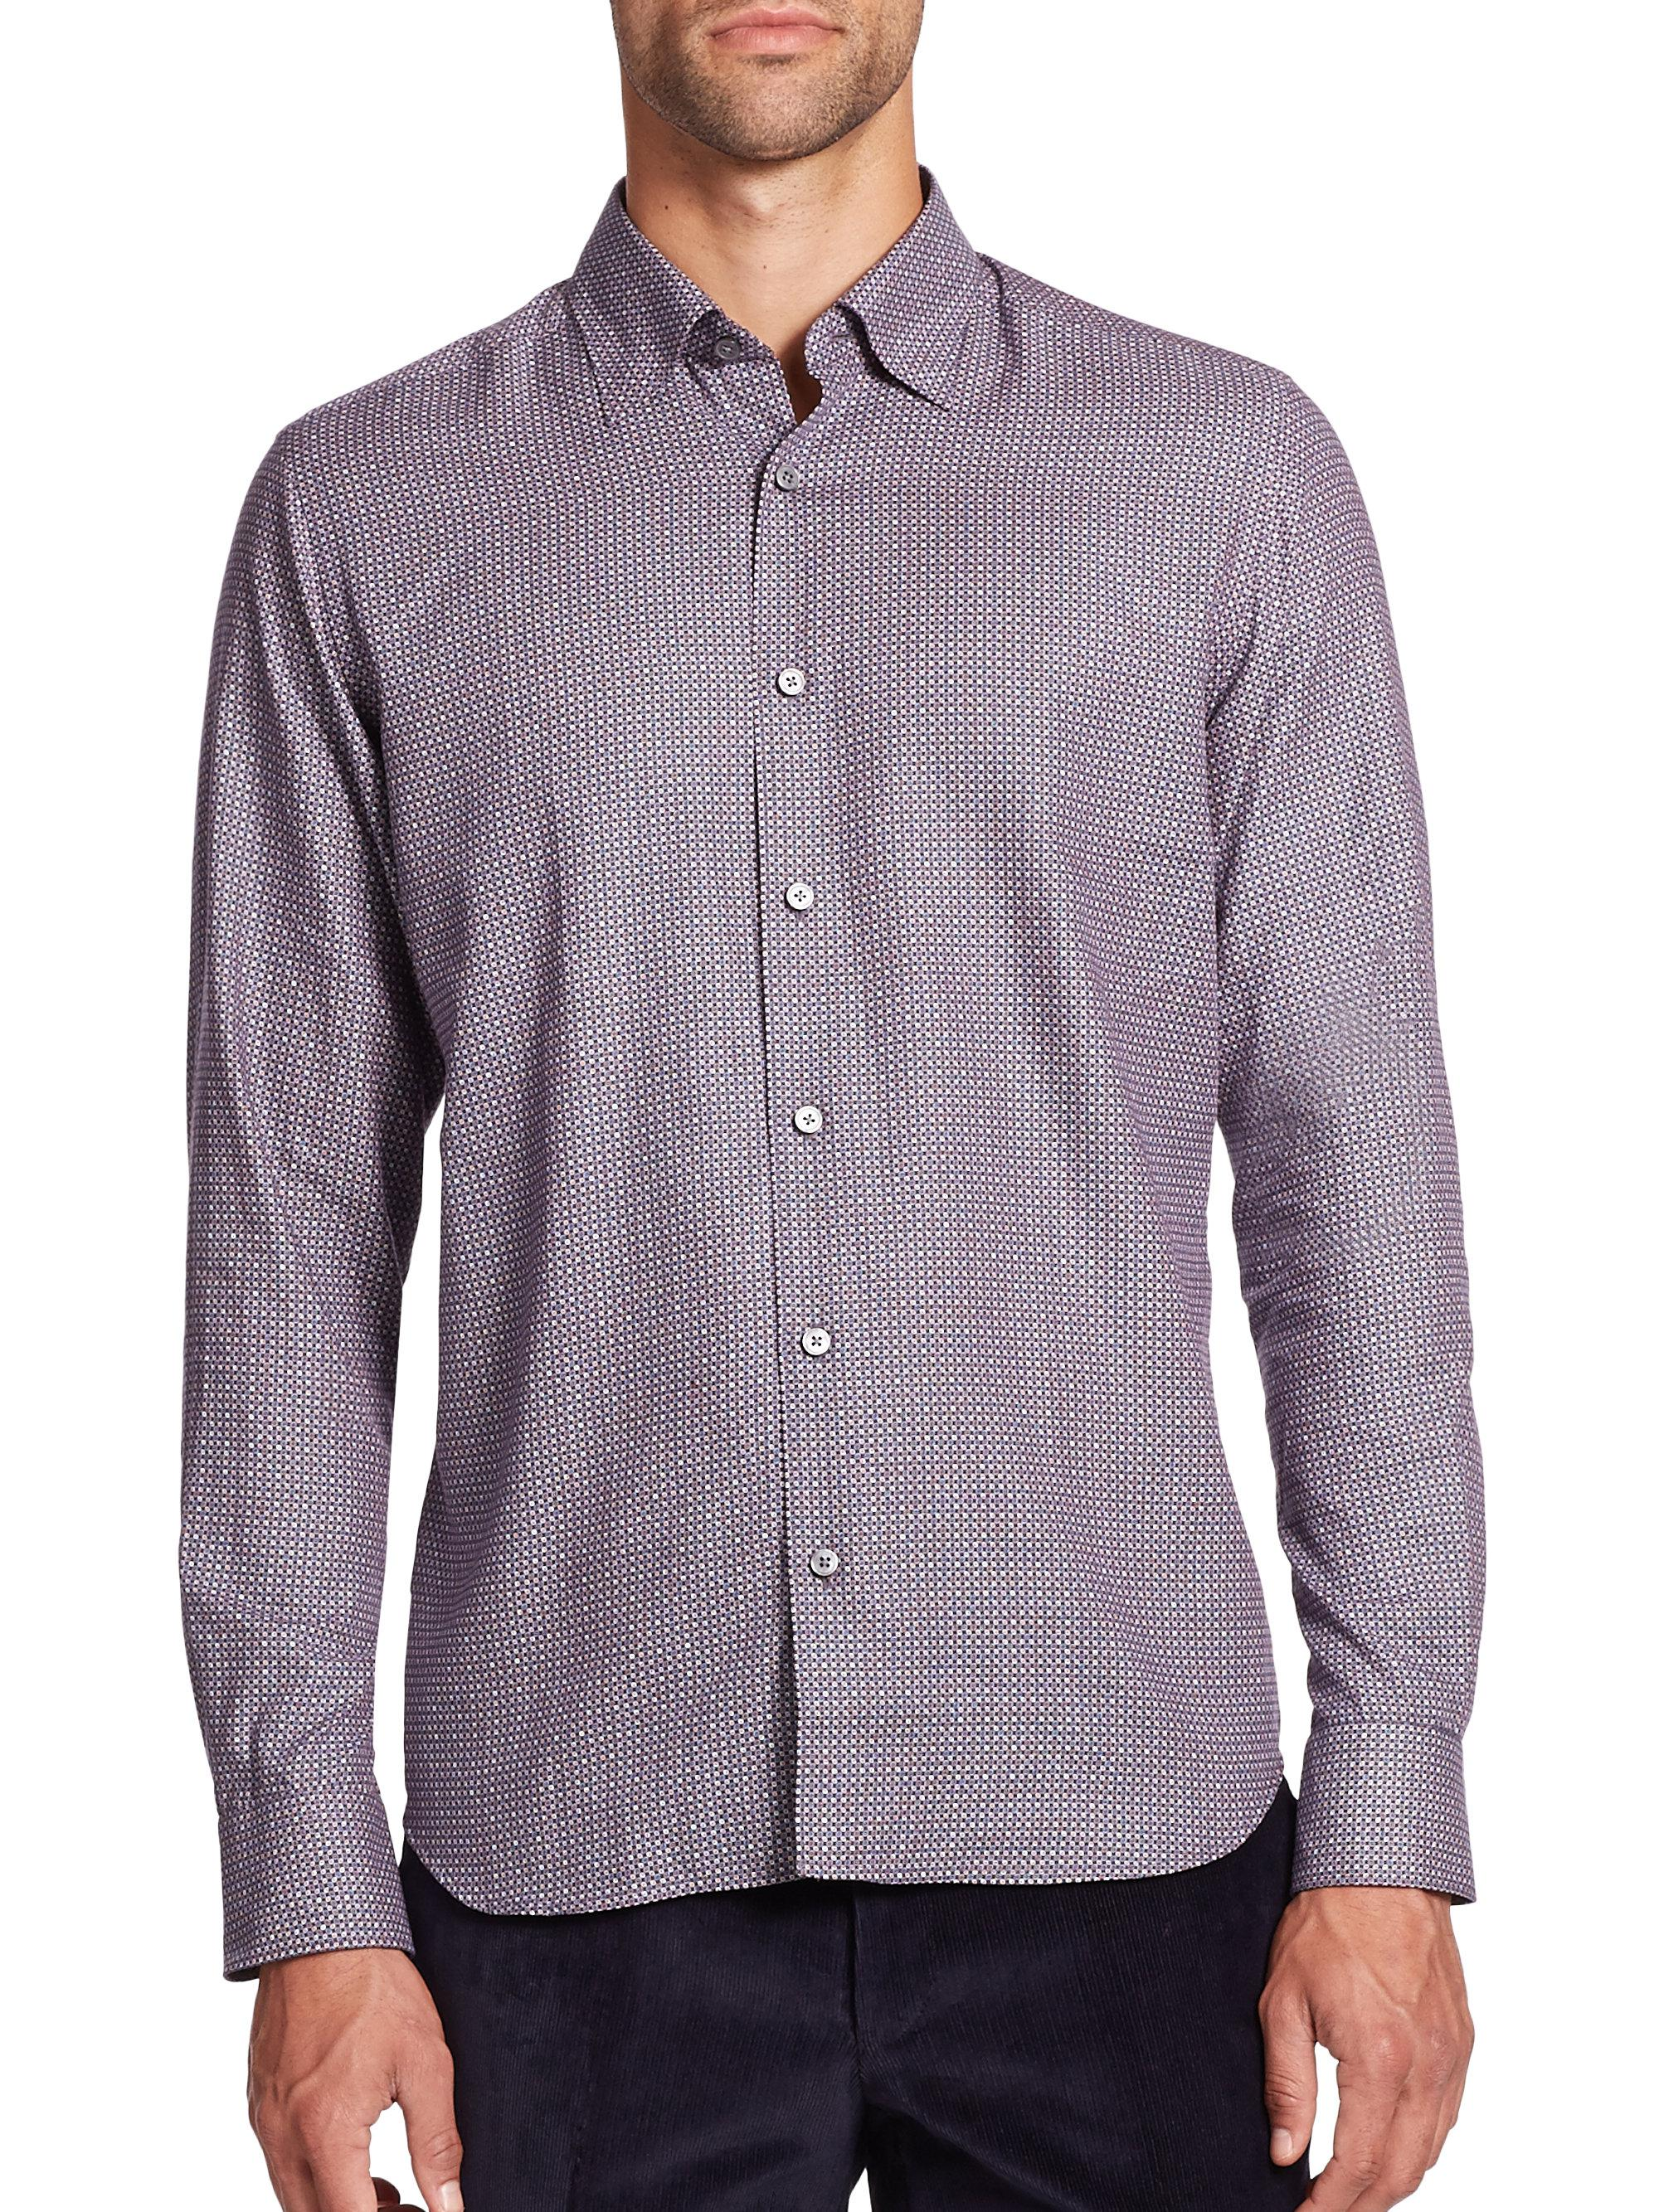 Lyst saks fifth avenue printed cotton button down shirt for Cotton button down shirts men